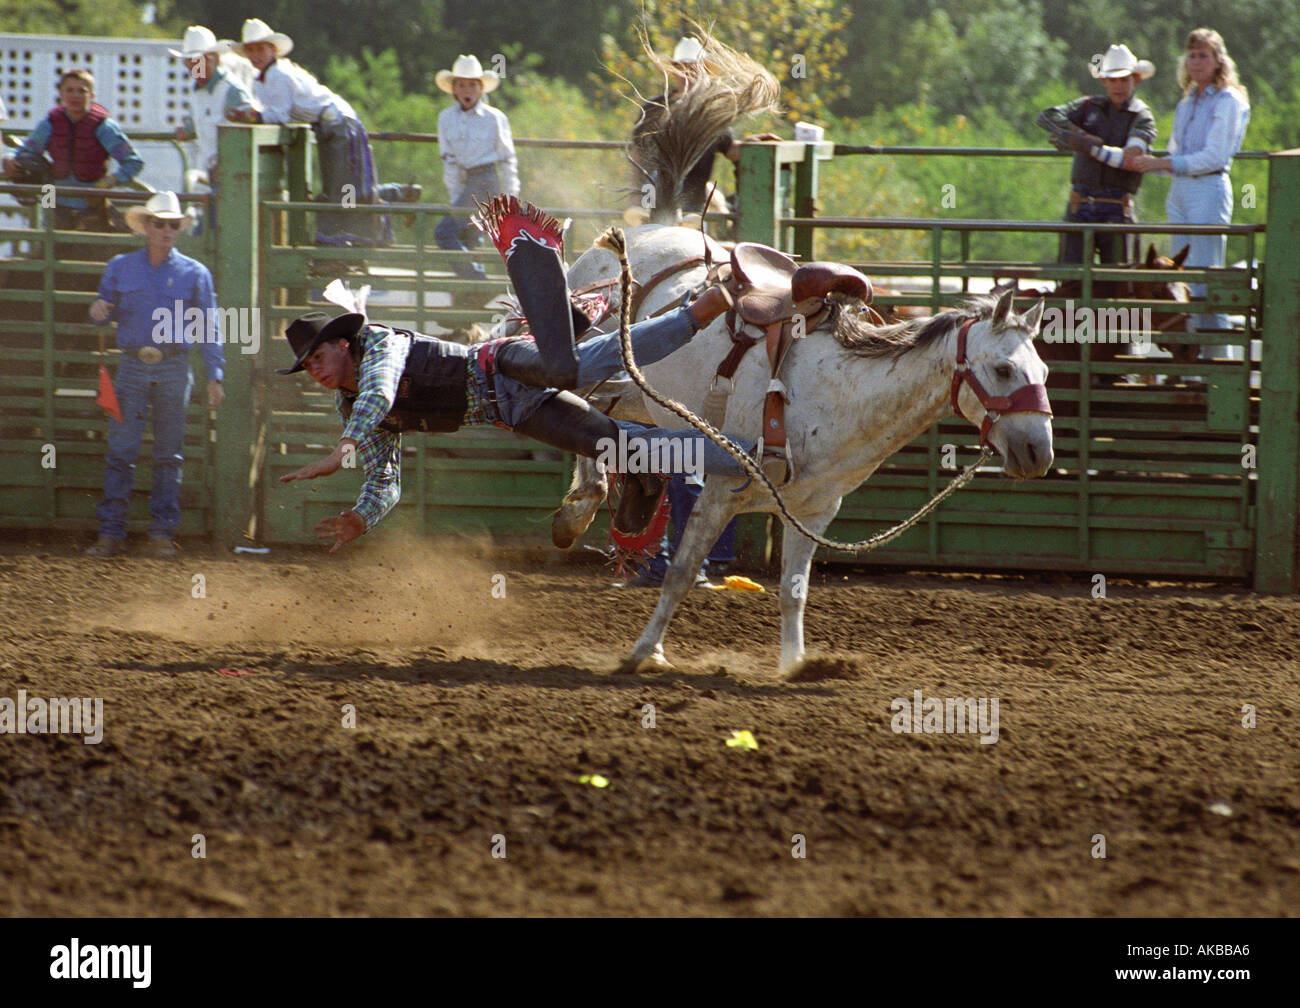 Rodeo competitor falling off bronco - Stock Image